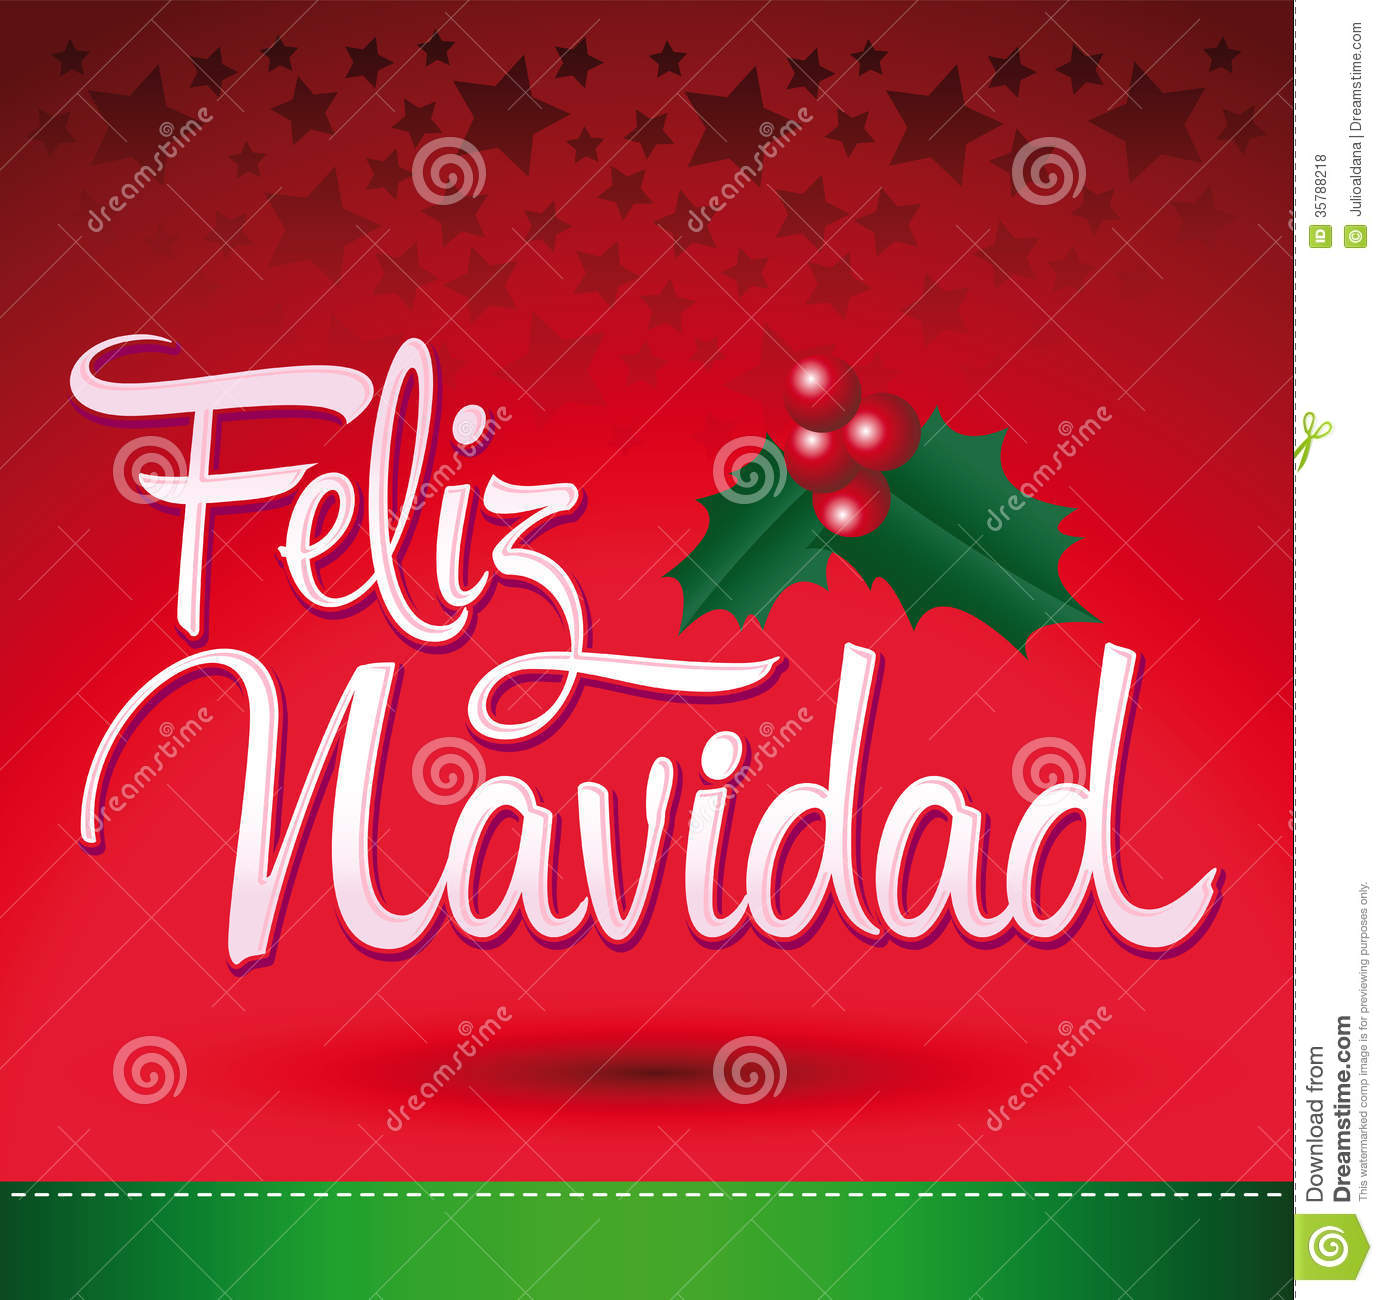 Merry christmas card with greetings in spanish language feliz feliz navidad royalty free stock photos m4hsunfo